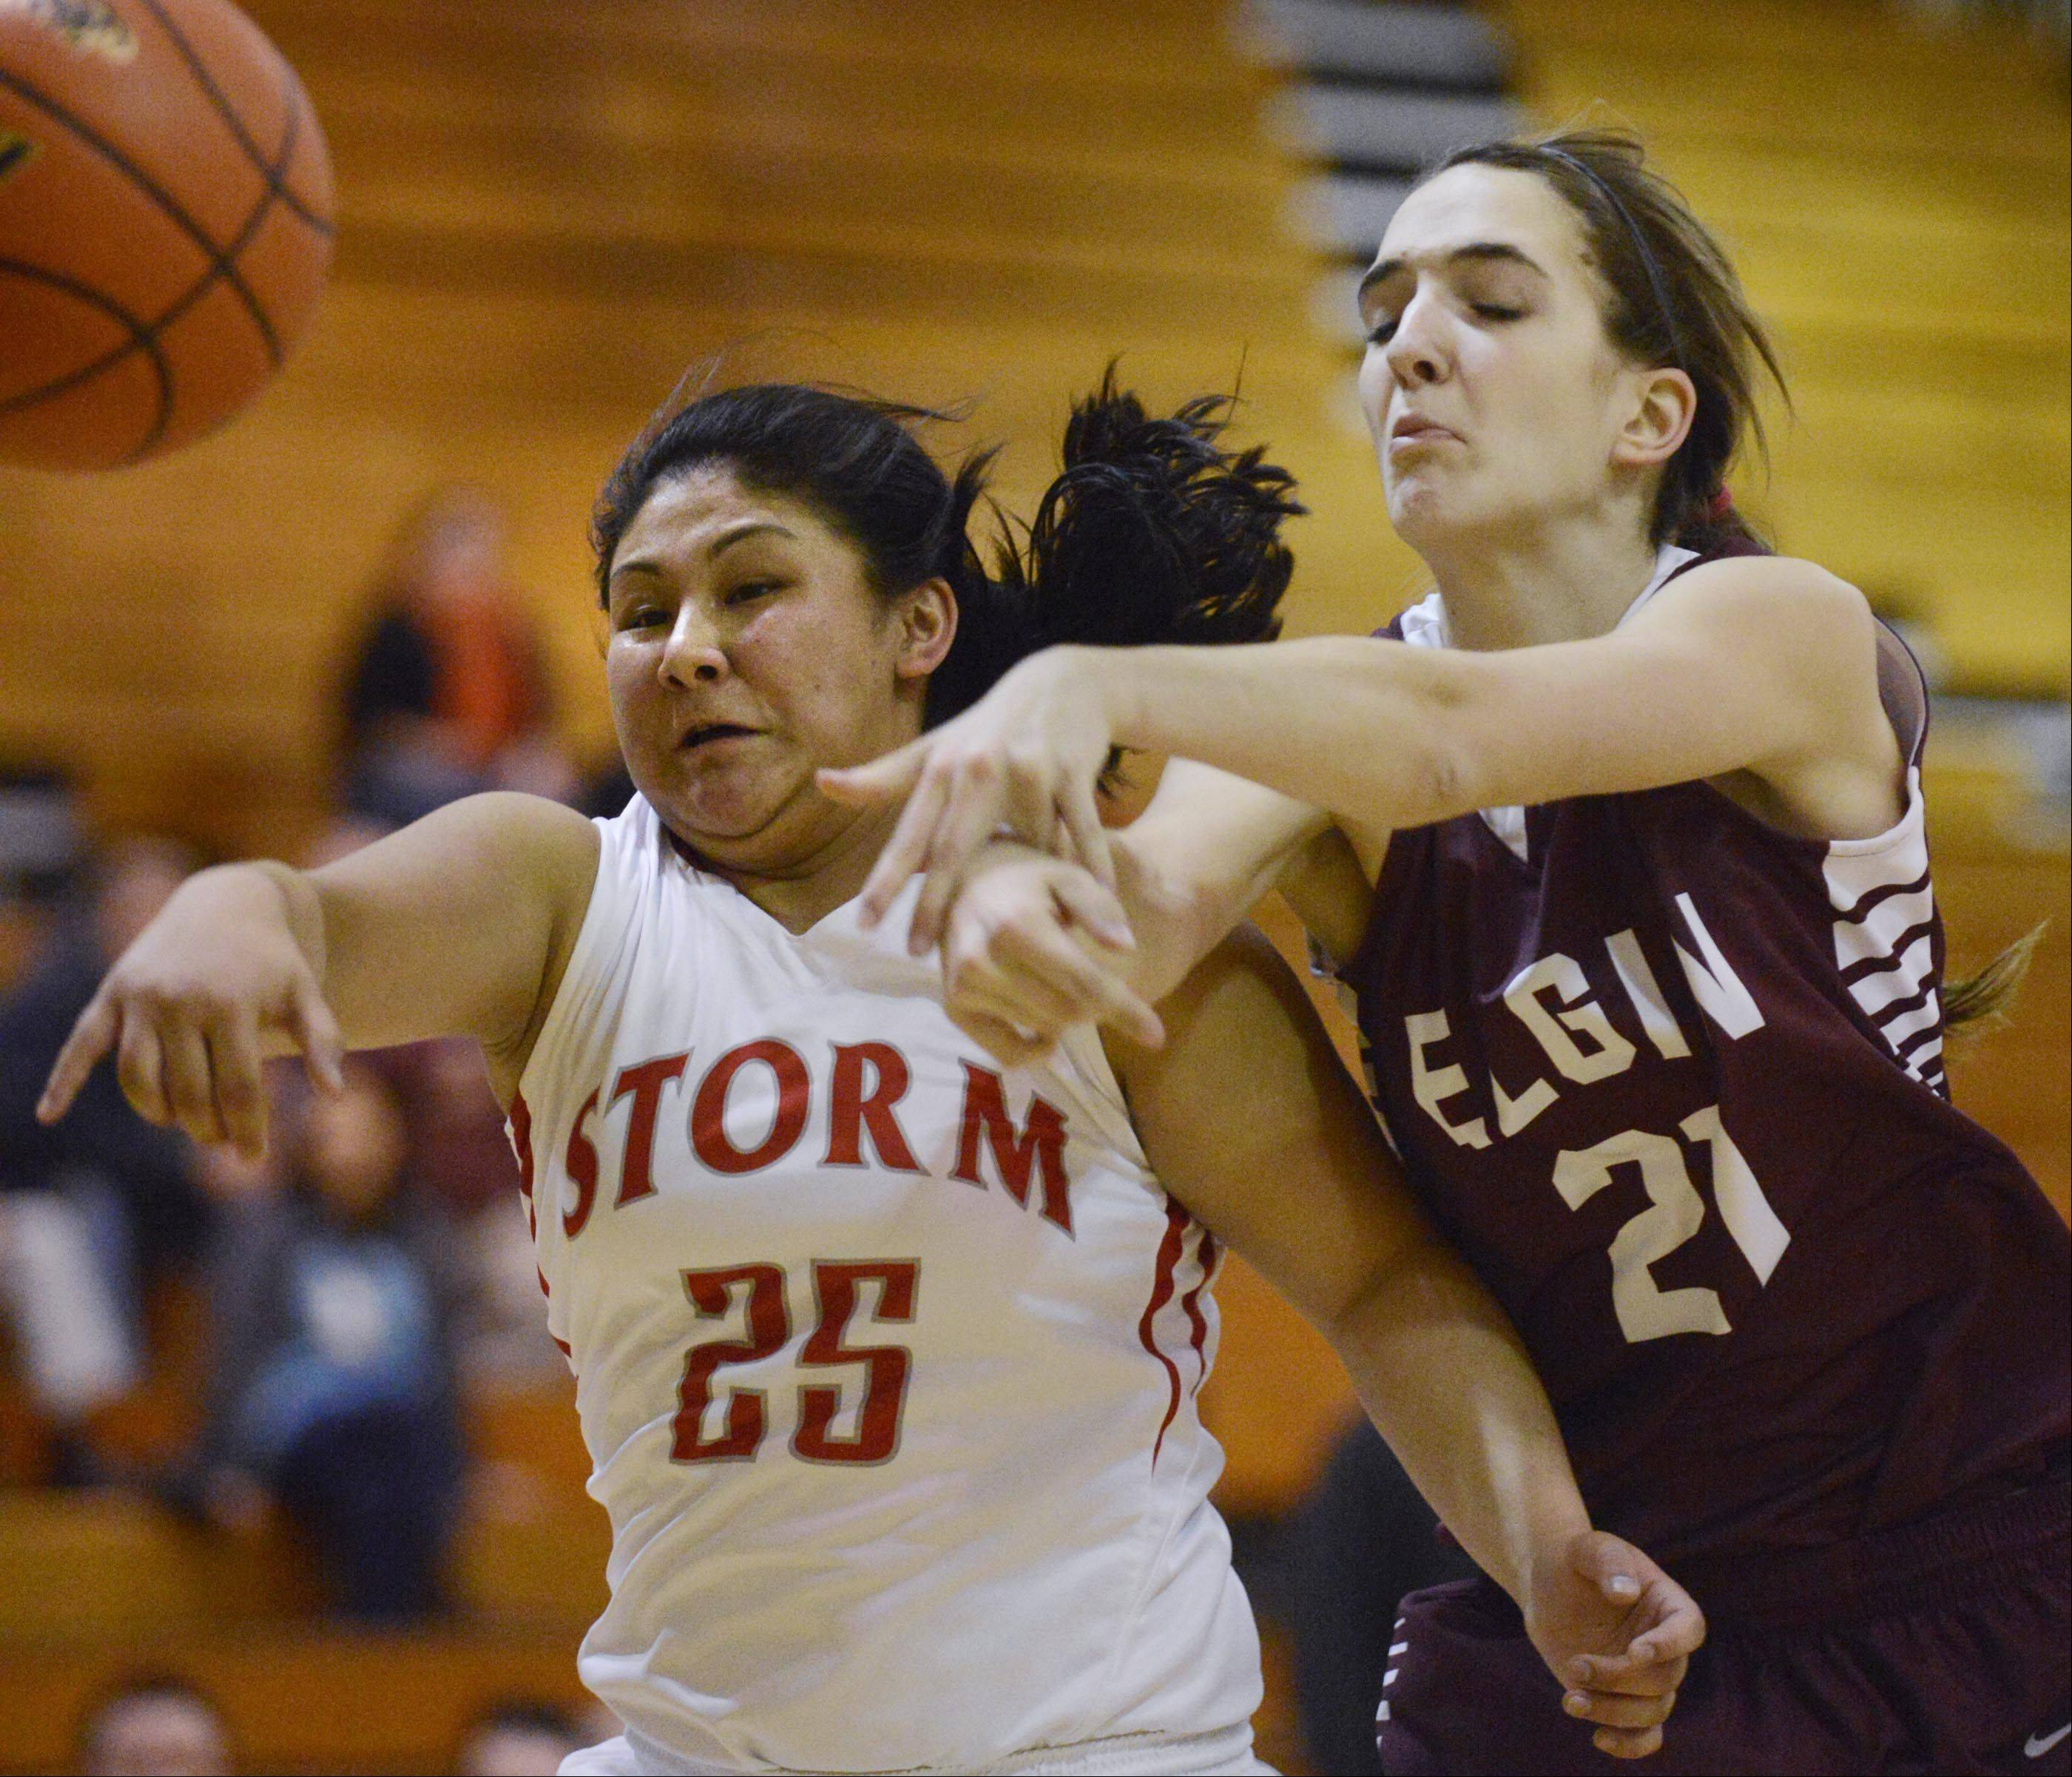 Elgin's Tamara Milosevic and South Elgin's Nadia Yang reach for the ball in Tuesday's Class 4A regional semifinal game in Streamwood.